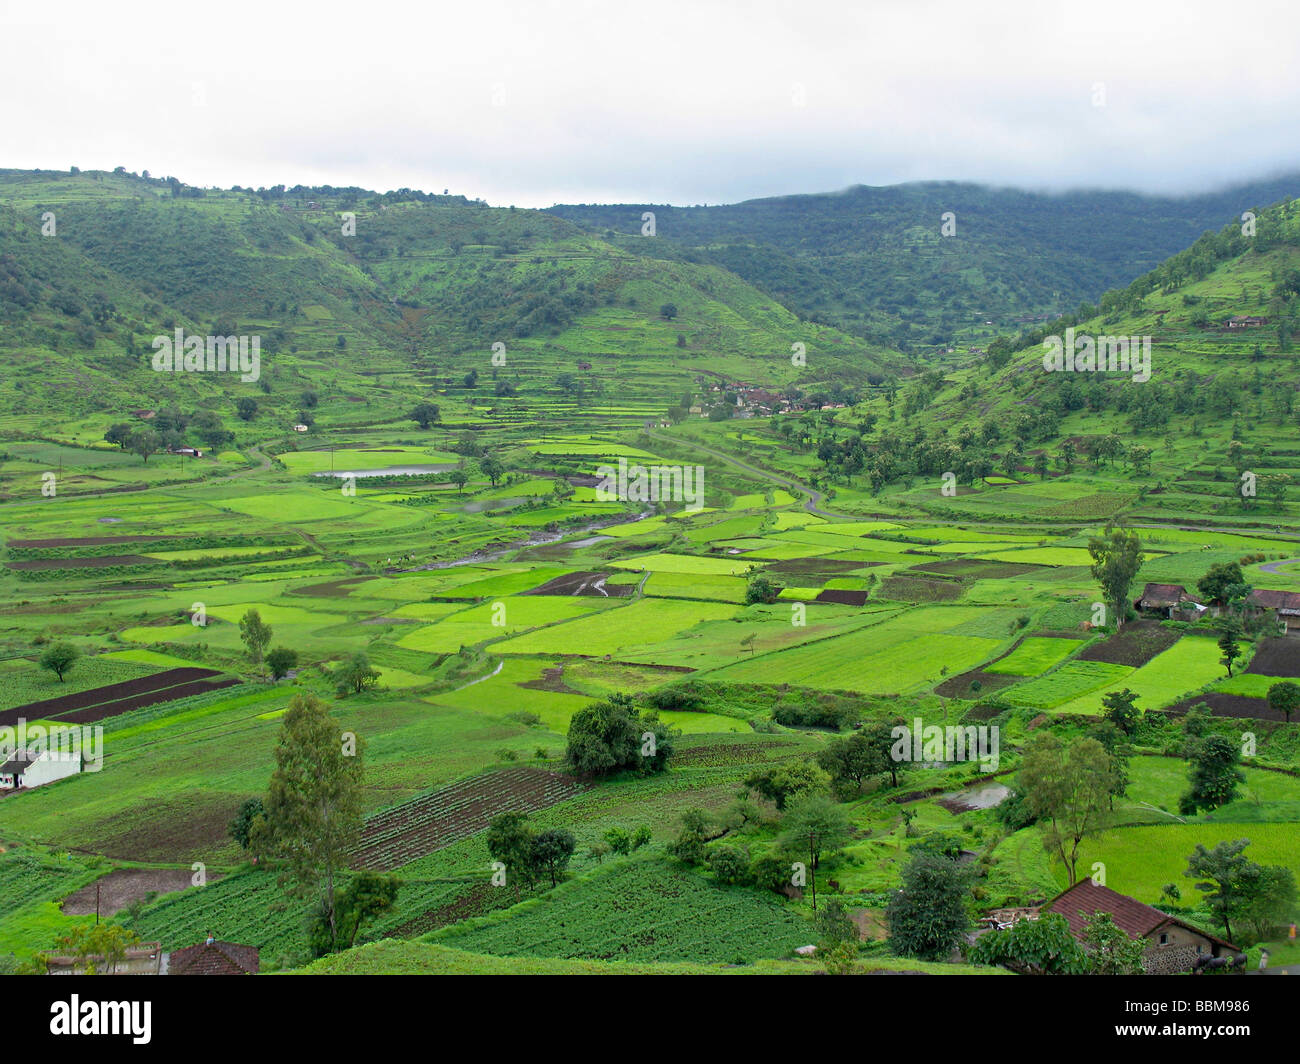 landscape, houses in the farm. village. - Stock Image